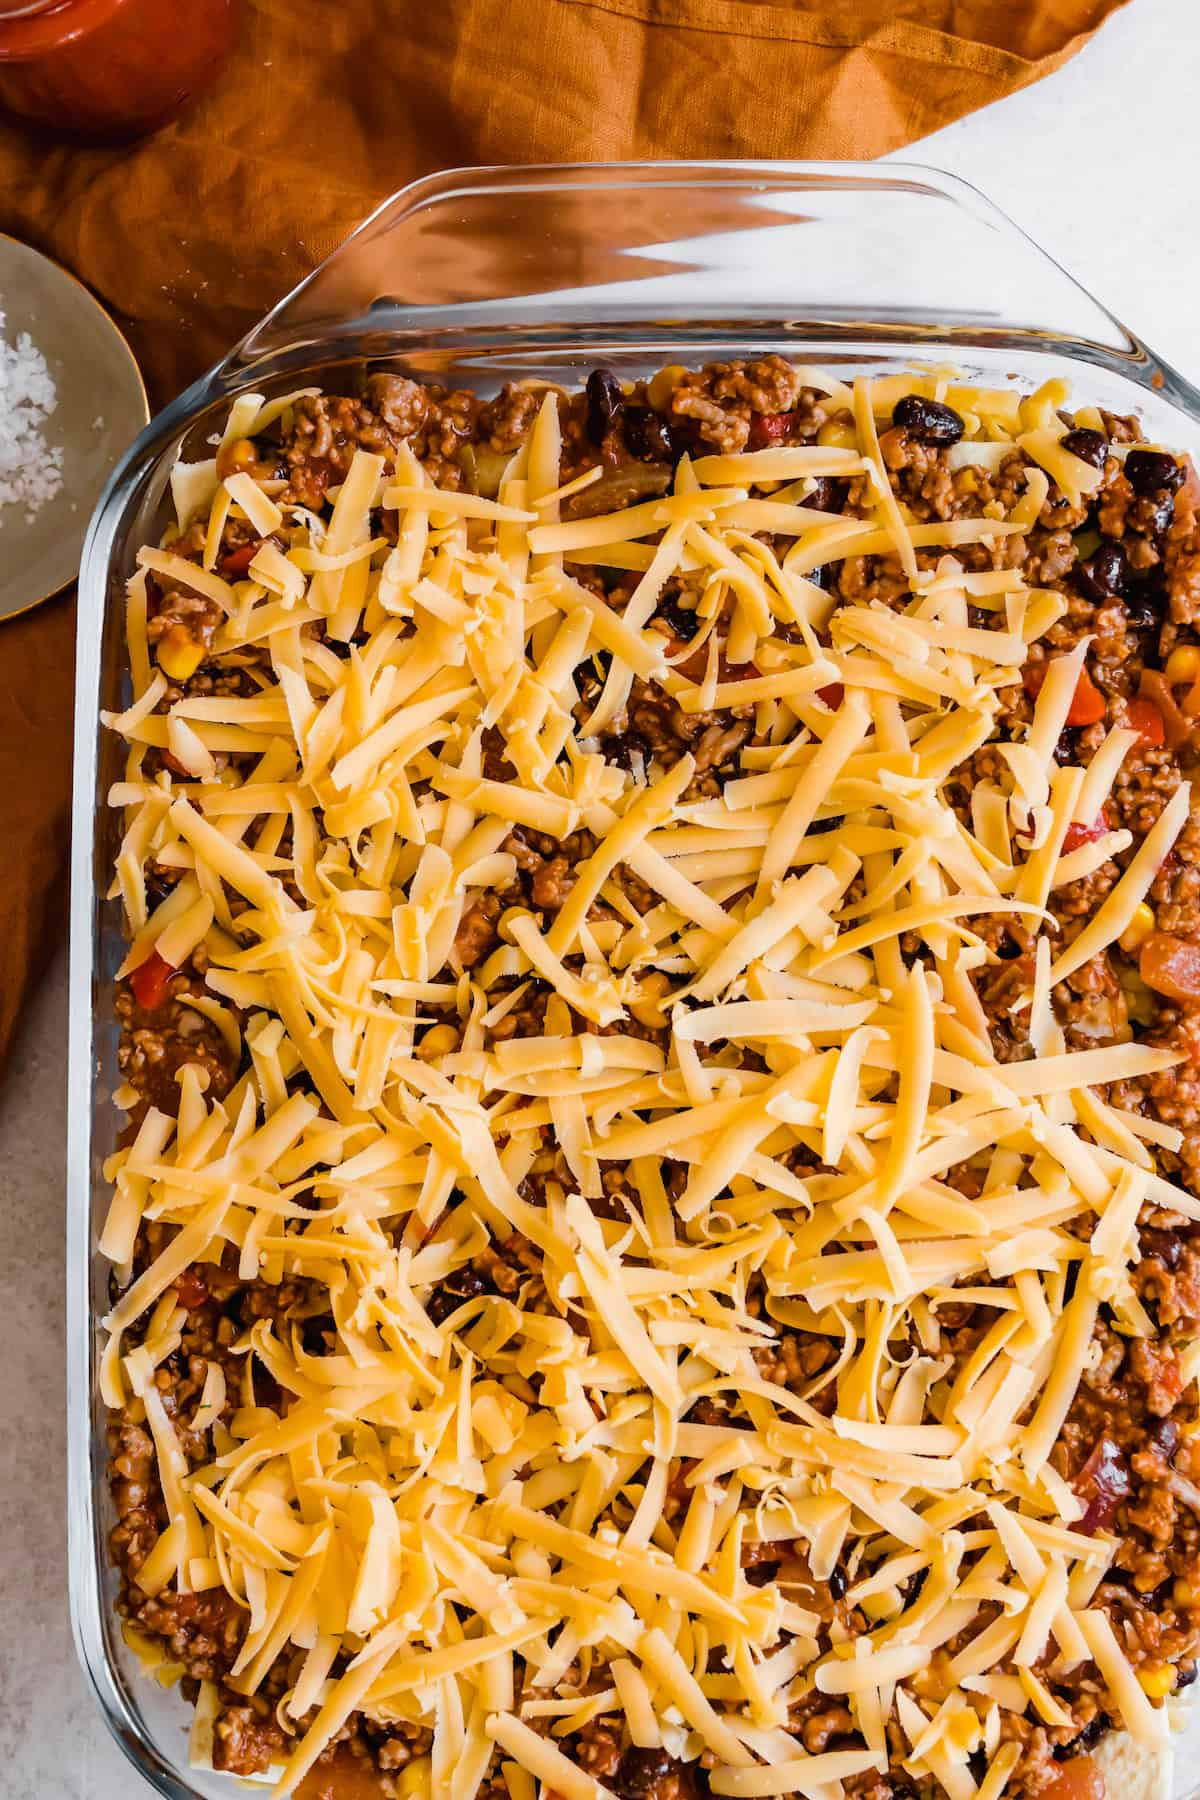 Layered, Unbaked Mexican Lasagna with Shredded Cheddar Cheese on Top